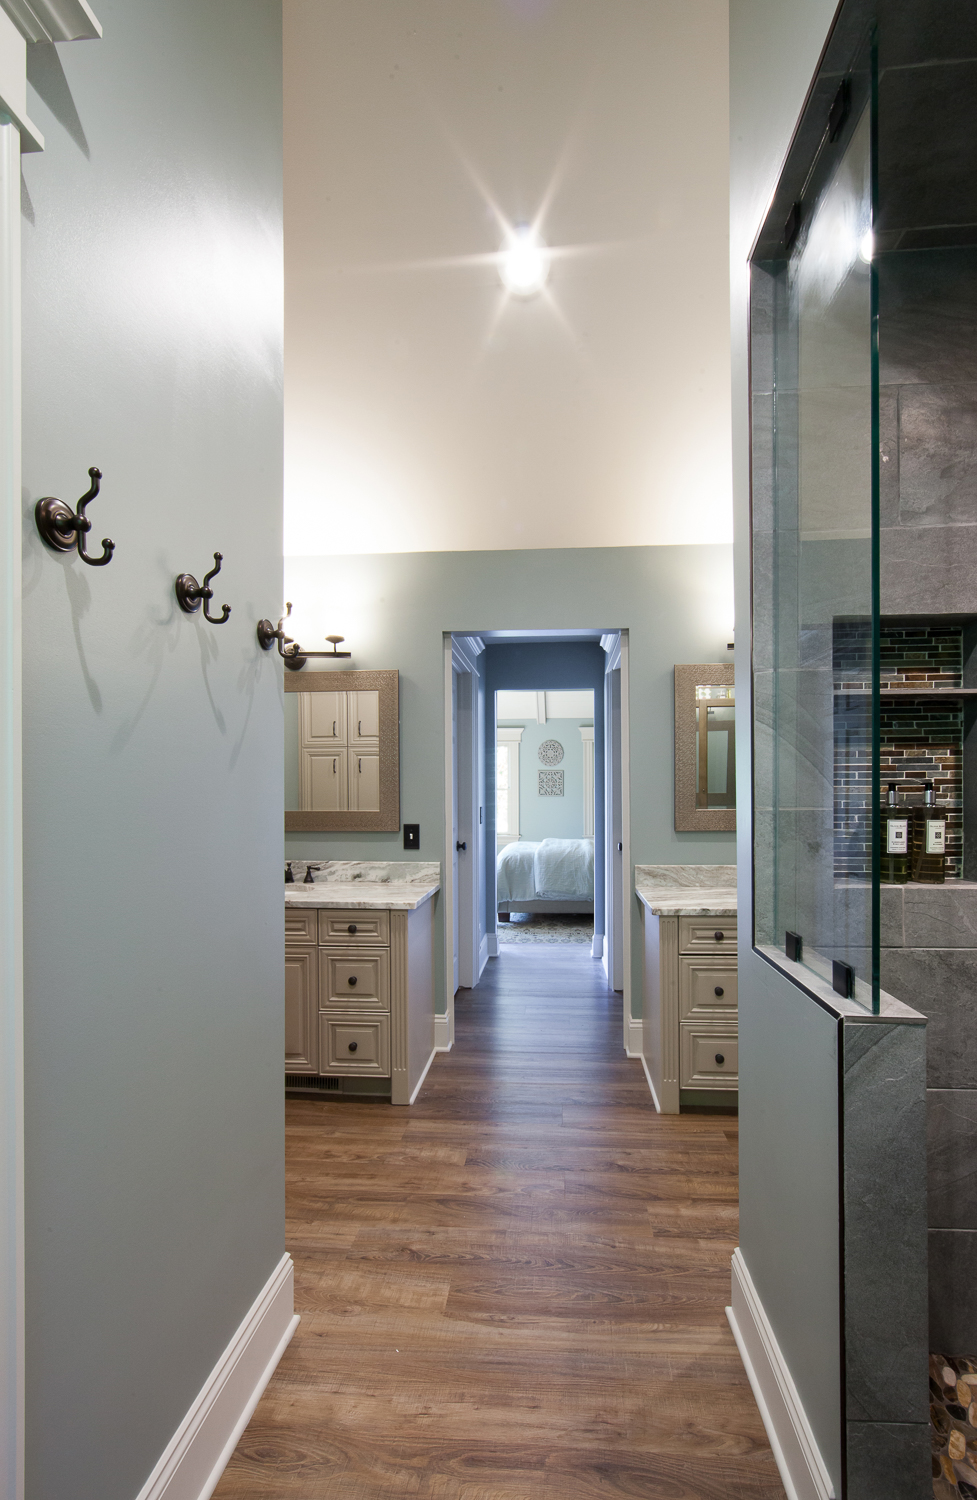 Dual vanities means the husband and wife each get their own side complete with their own private closets in the hallway which leads to the bedroom.